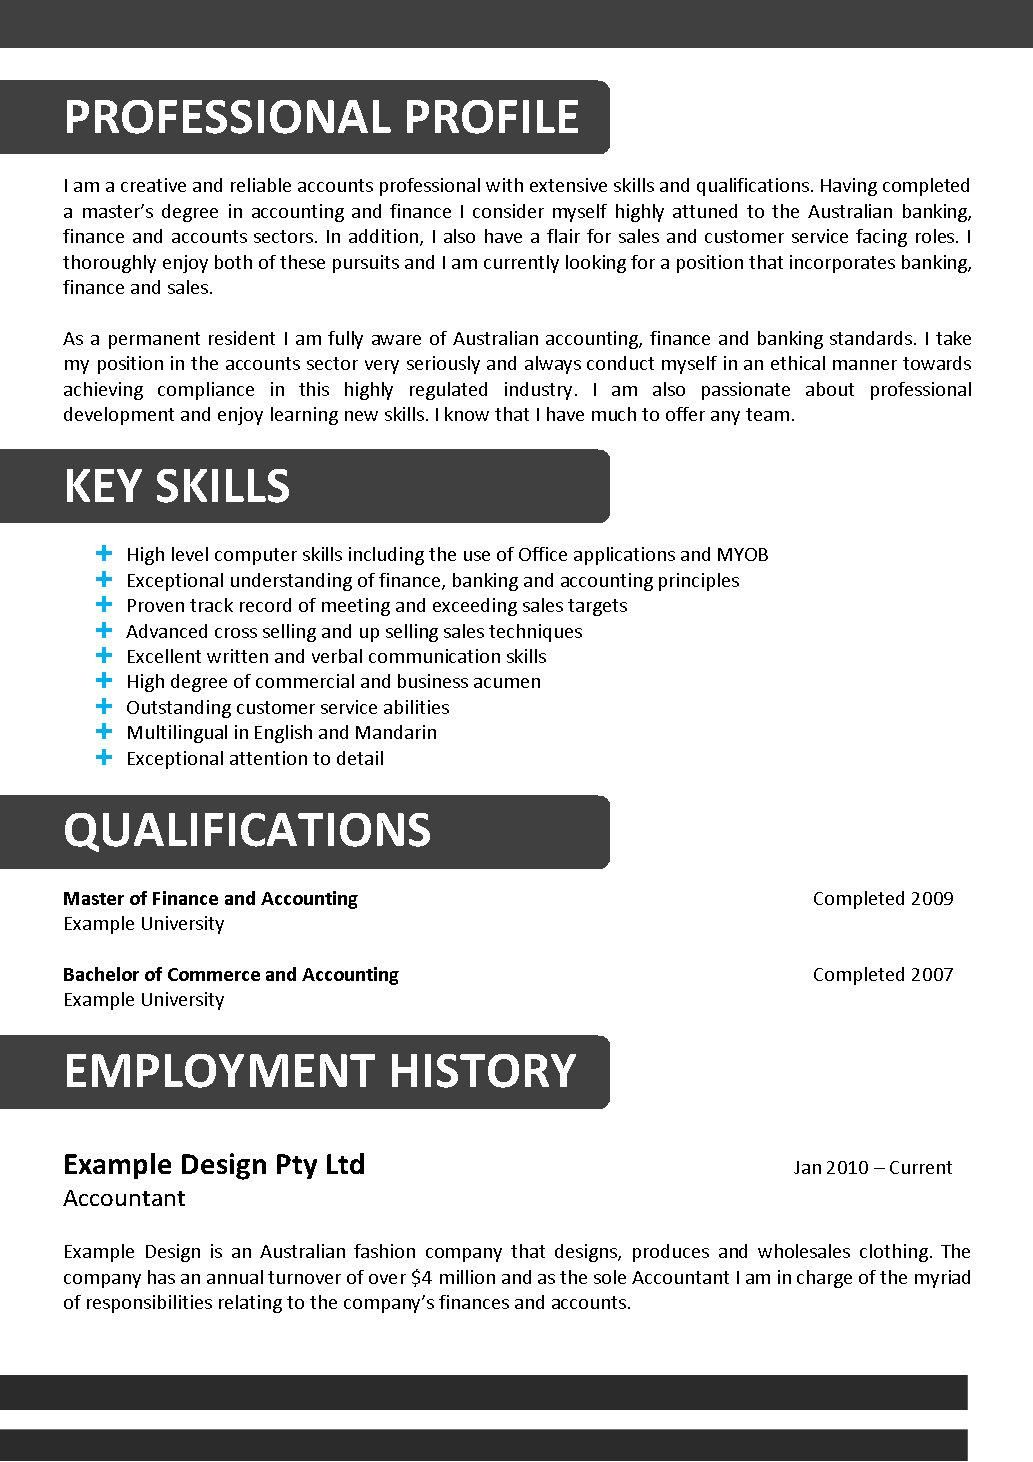 A Key to Drafting the Perfect Resume Resume template